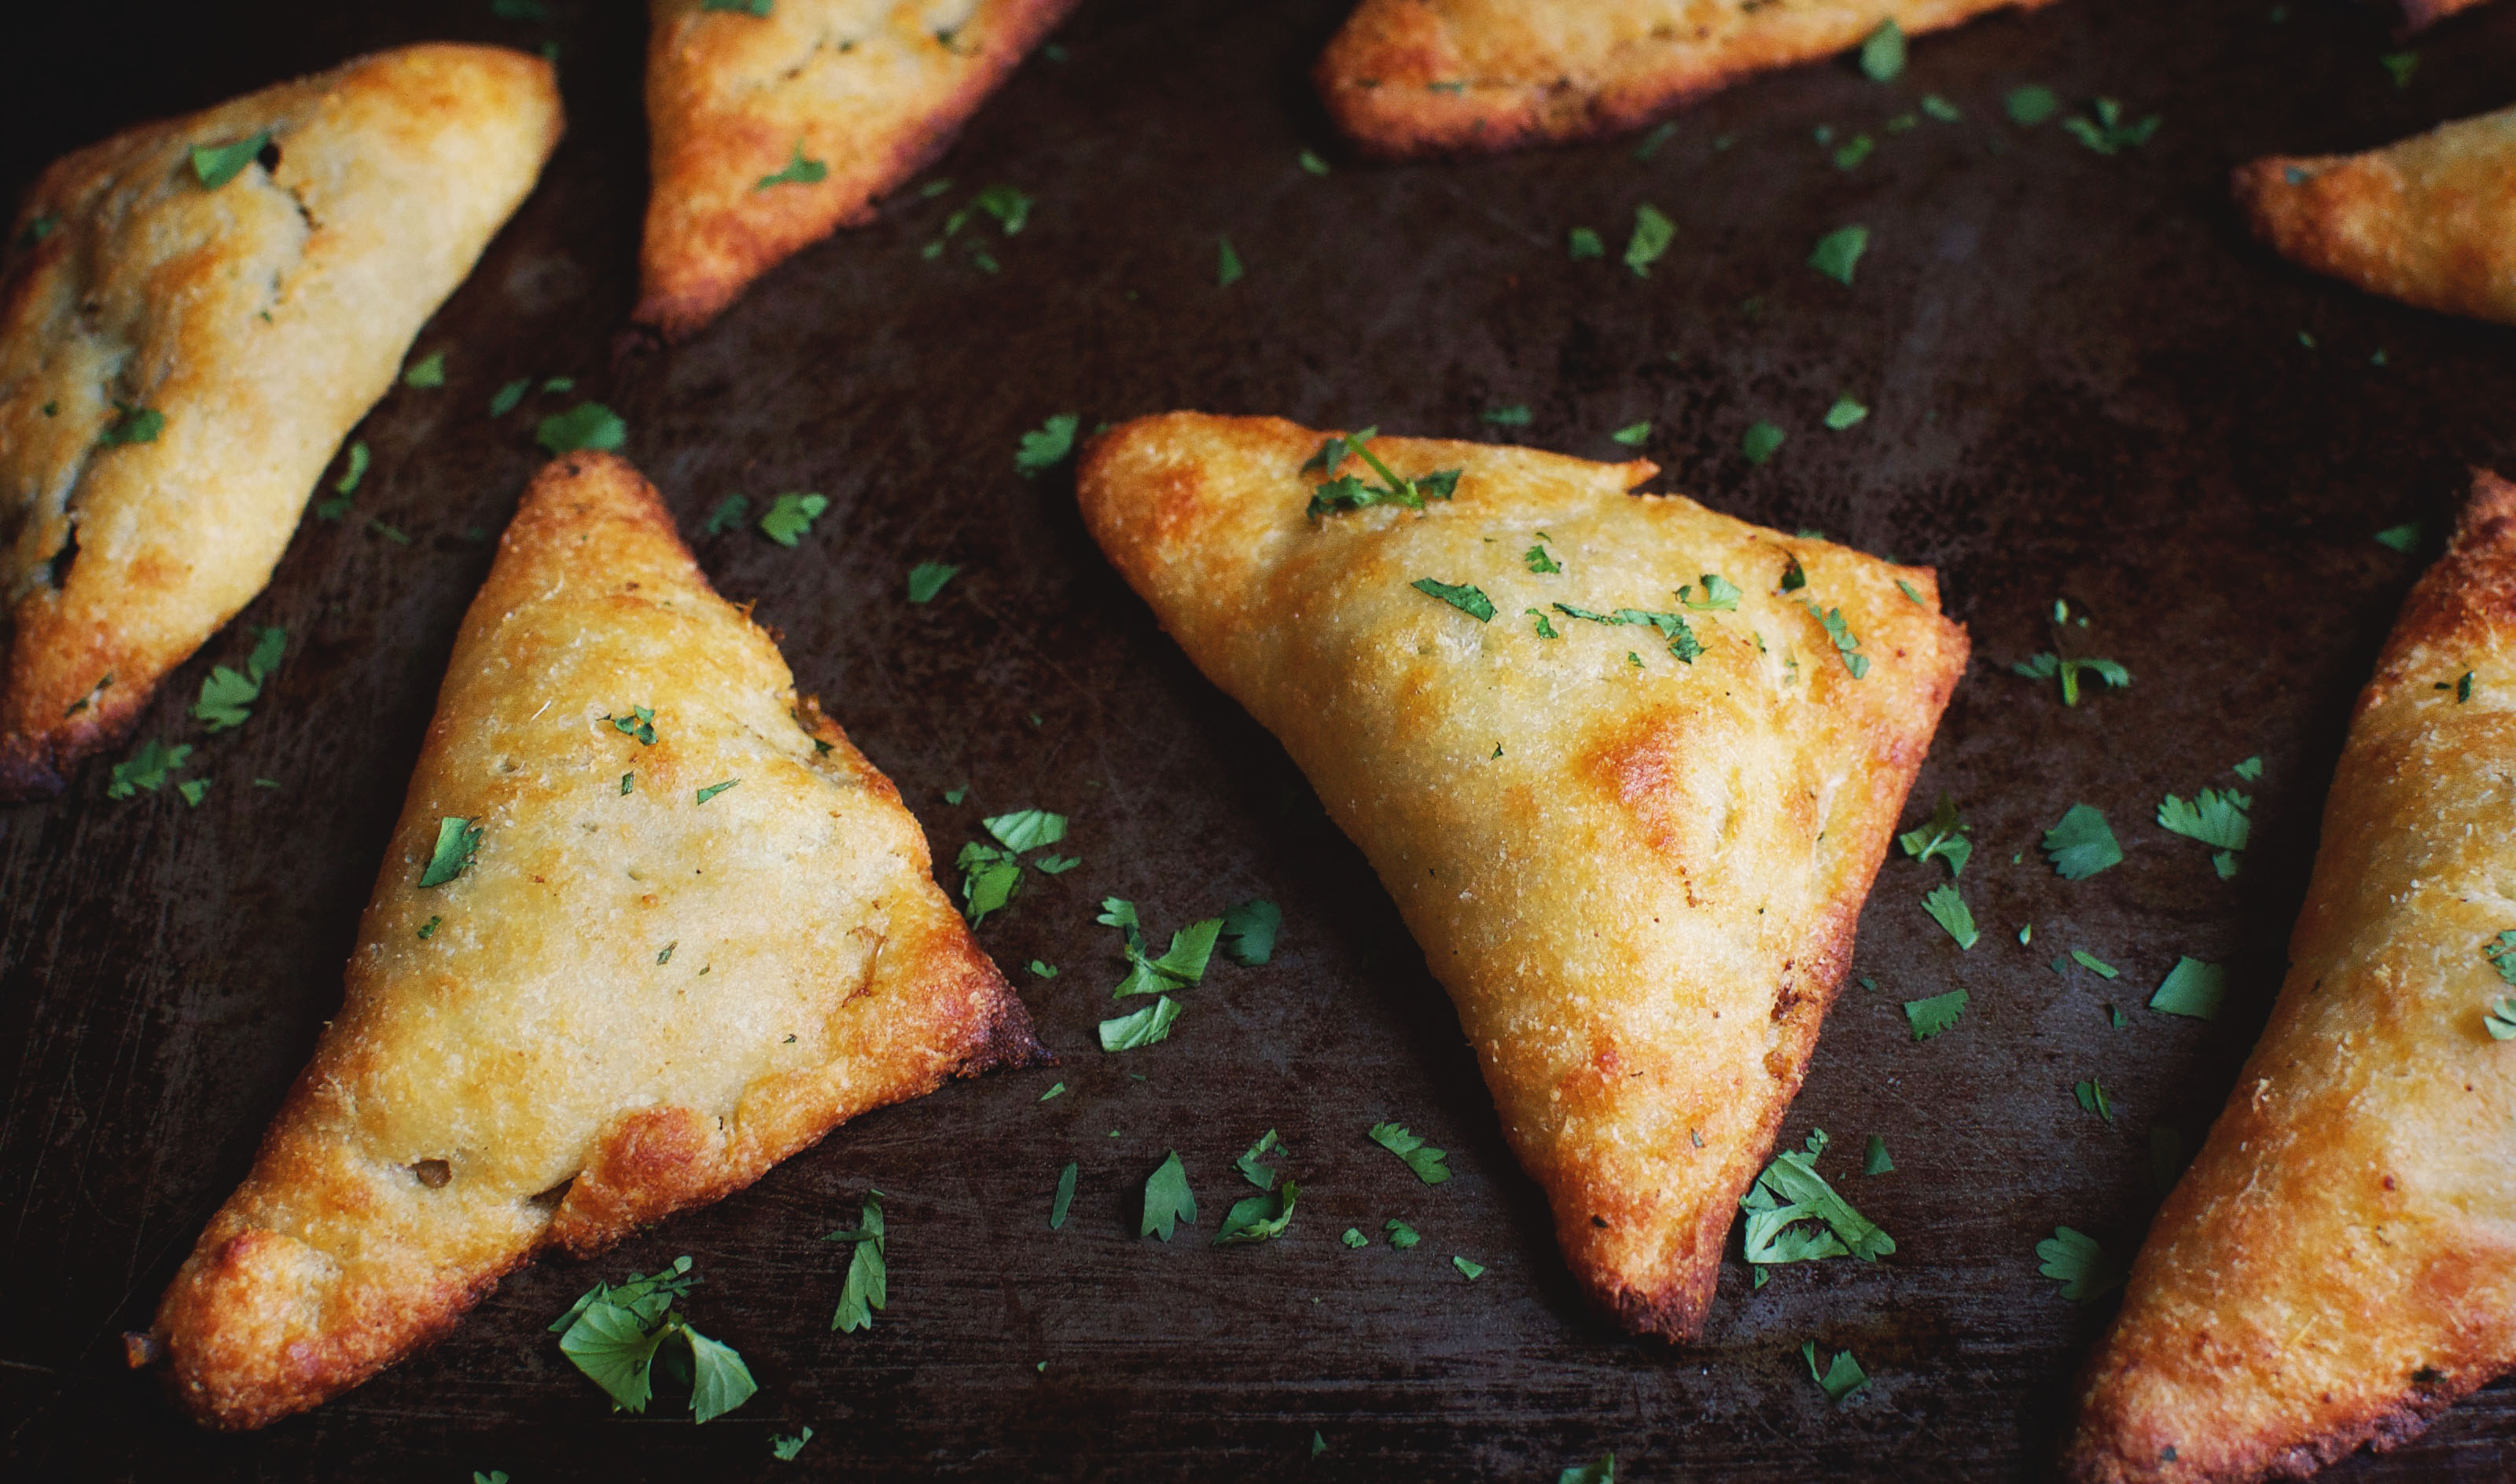 Low-Carb Indian Vegetable Samosas Recipe - Simply So Healthy